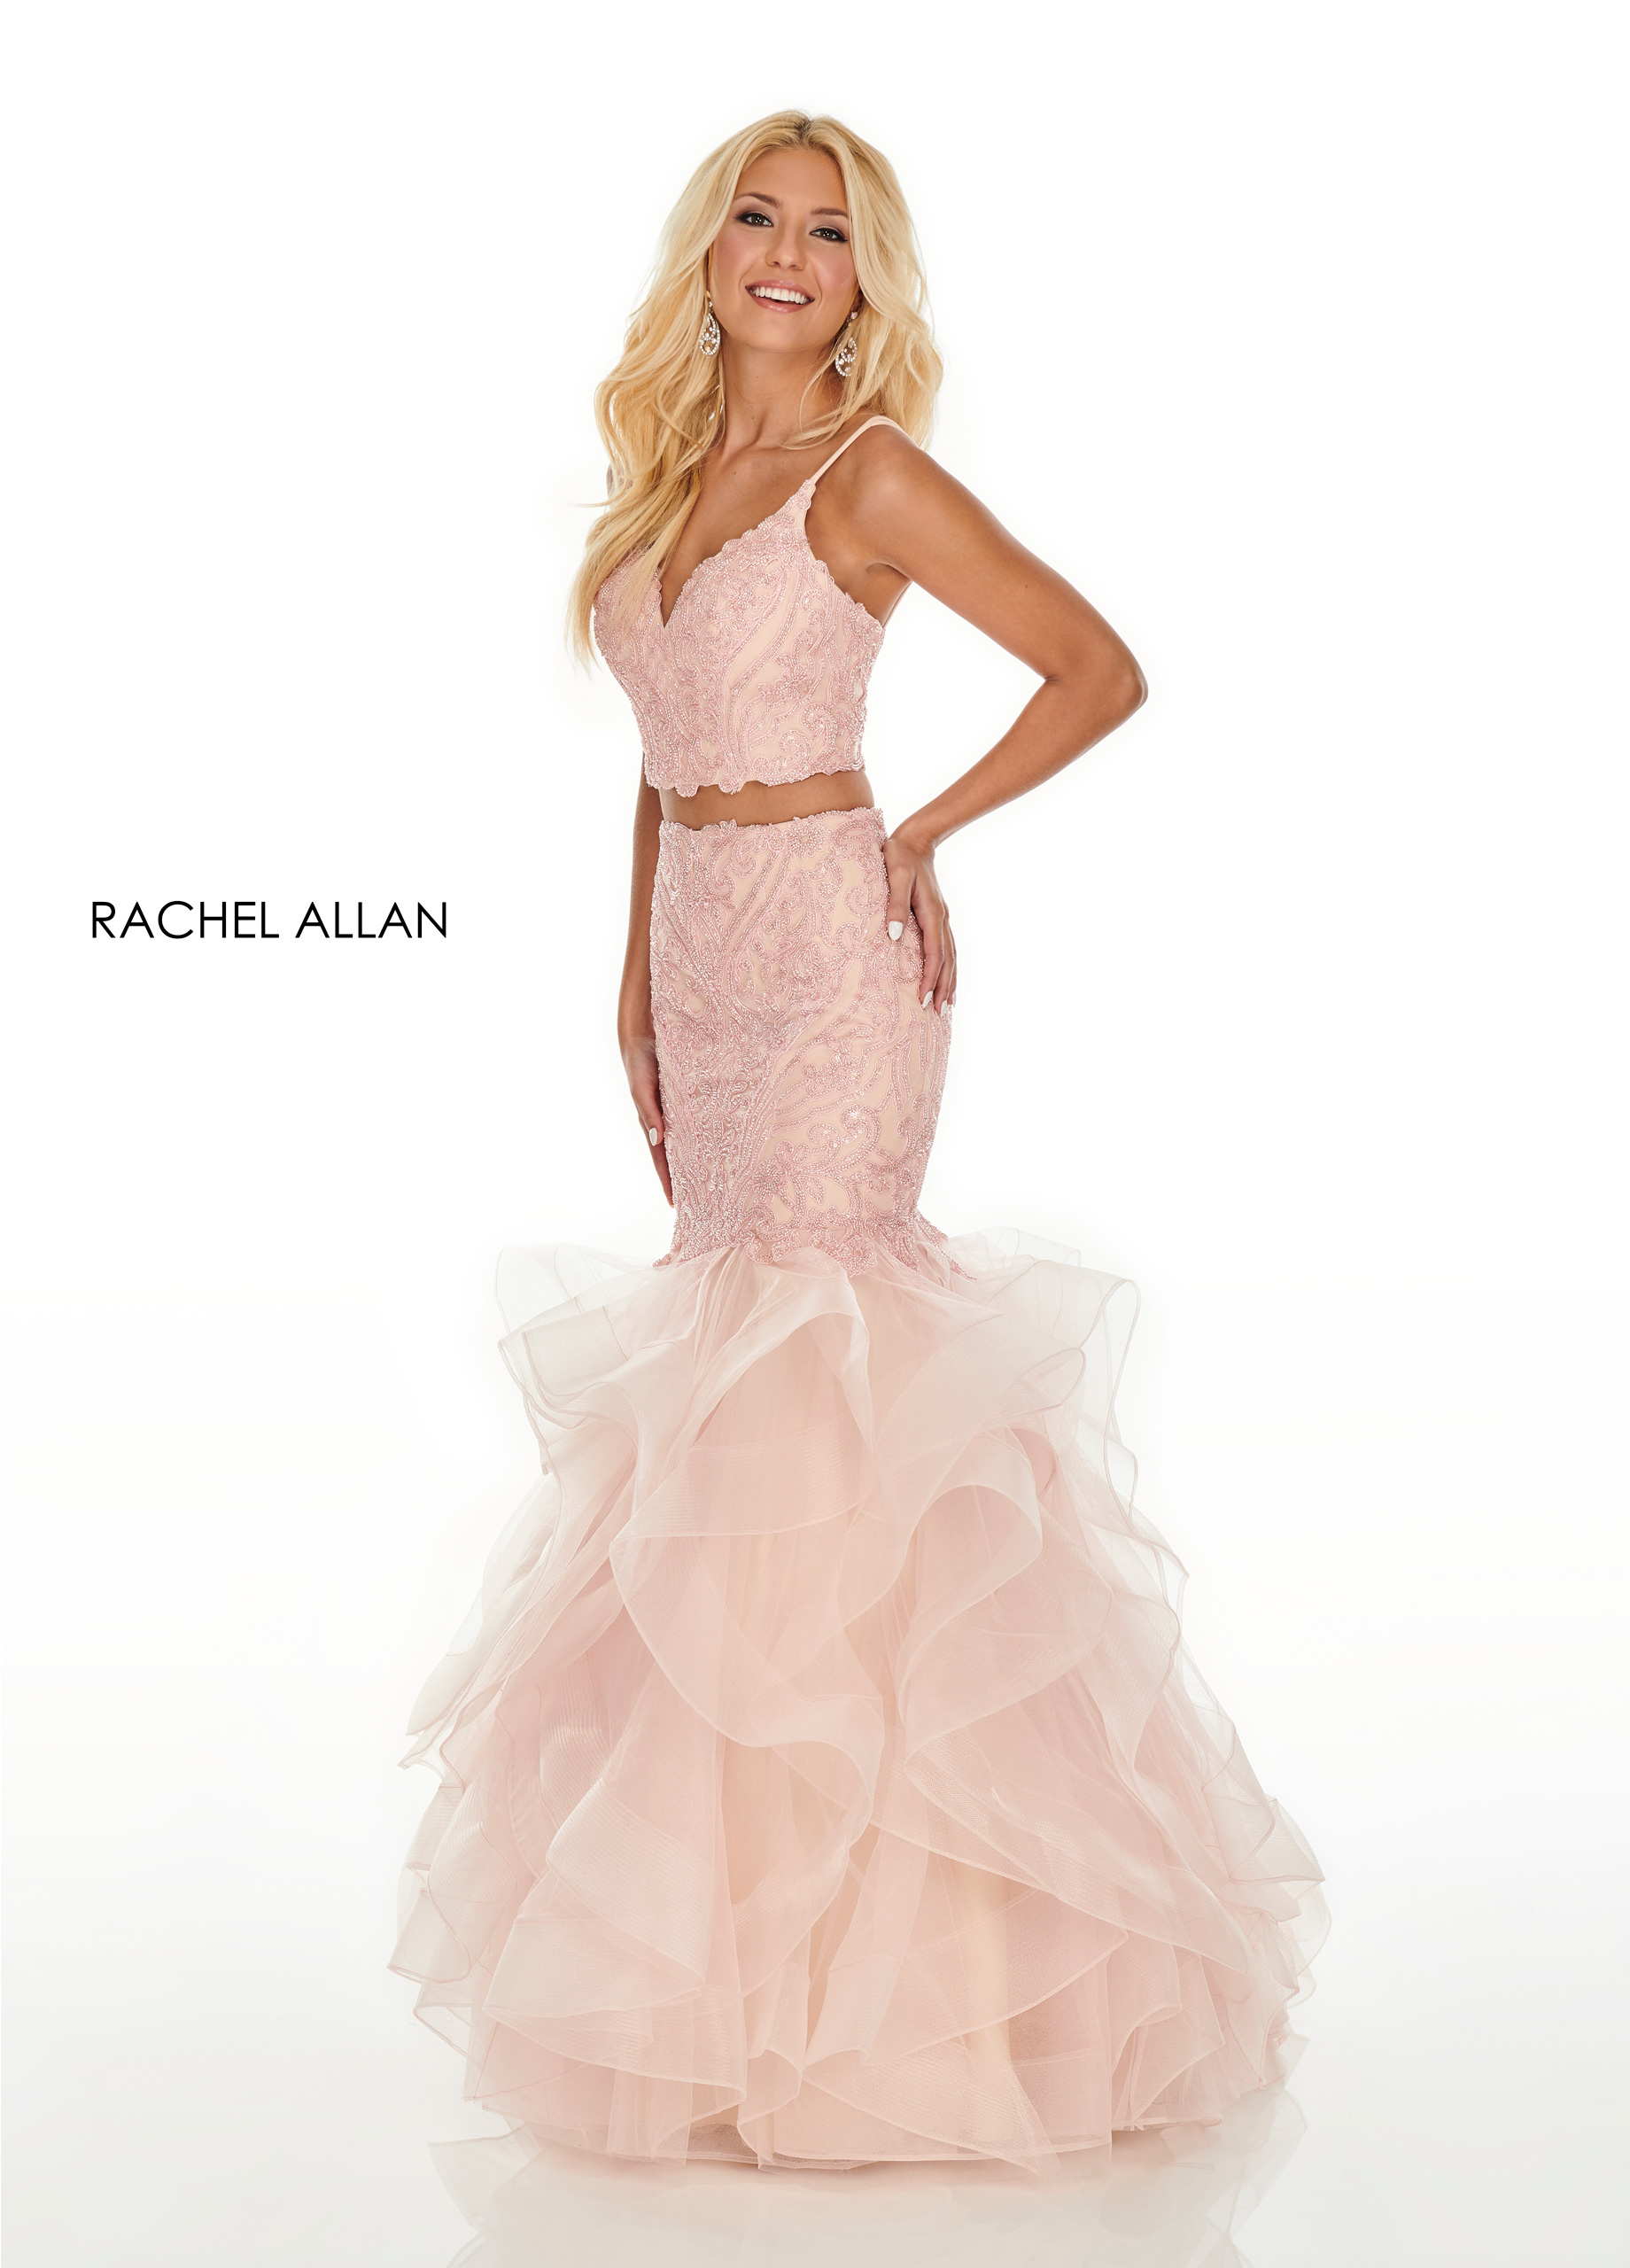 V-Neck Mermaid Prom Dresses in Blush Color